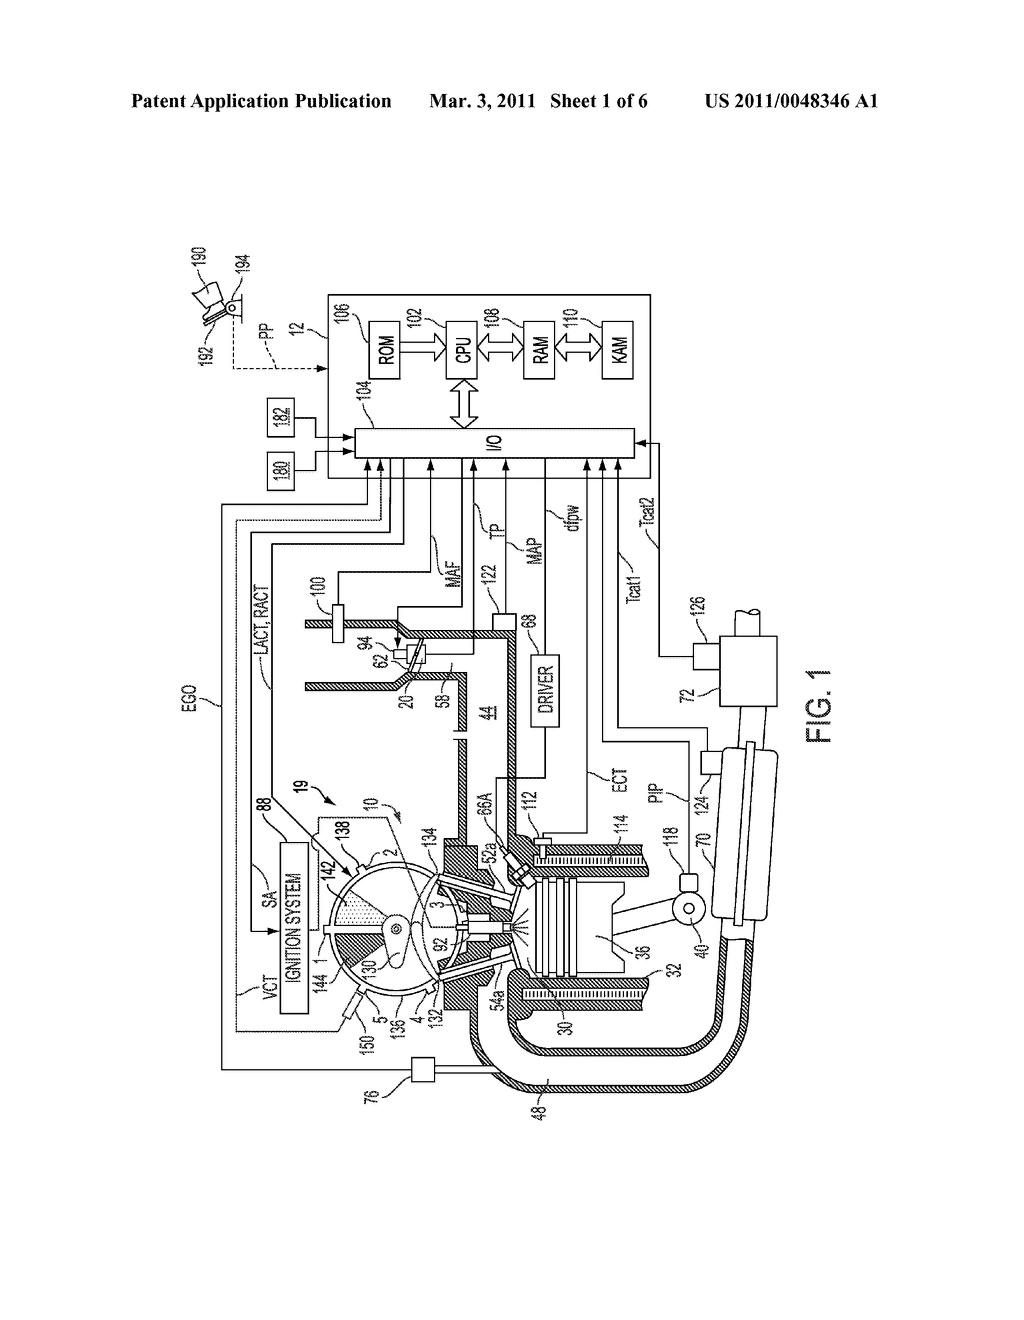 hight resolution of engine with hydraulic variable valve timing diagram schematic and image 02